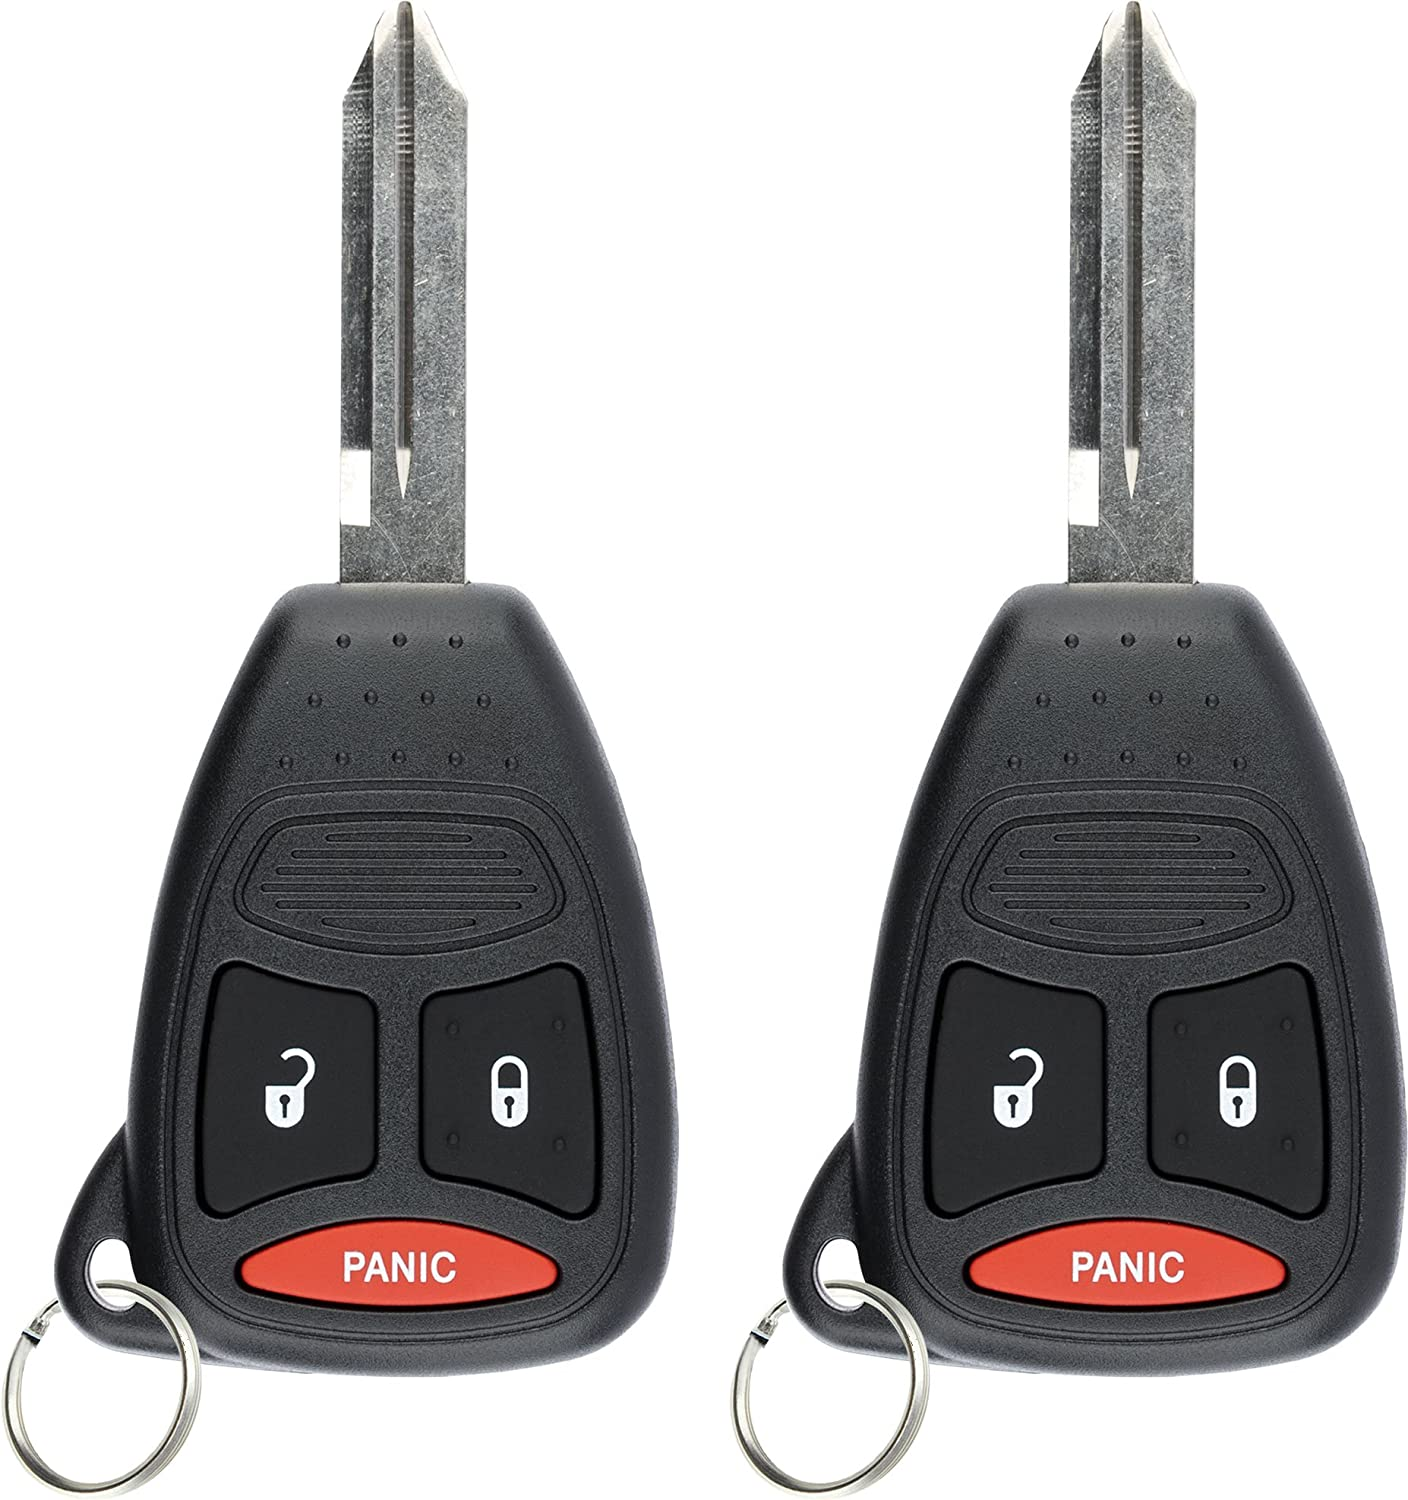 KeylessOption Keyless Entry Remote Control Blank Uncut Car Key Fob Replacement for KOBDT04A Pack of 2